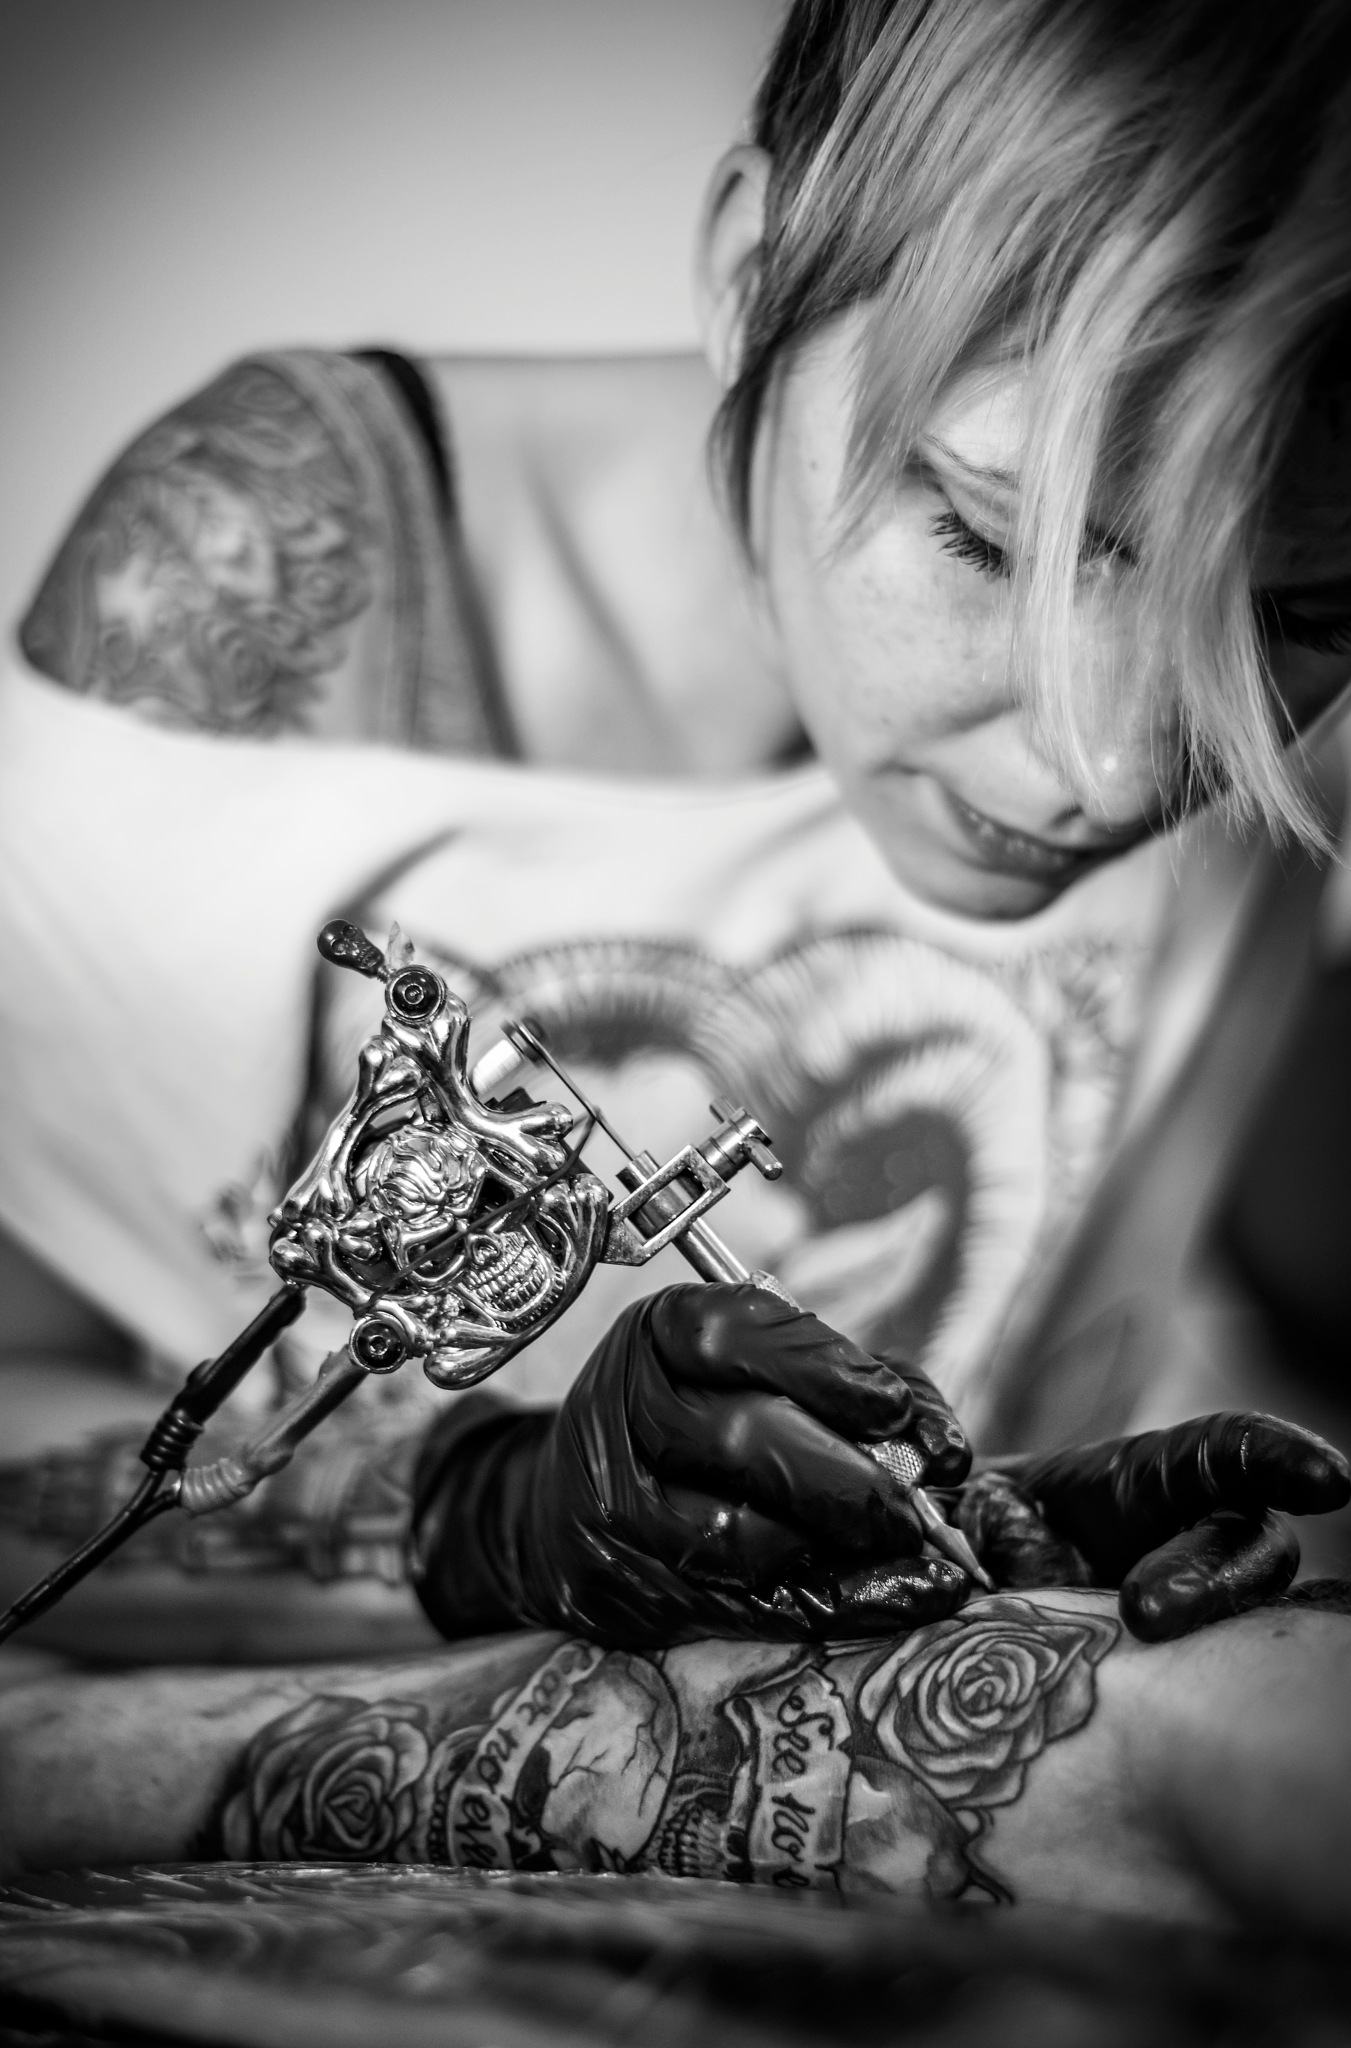 Tattoo artist Fox by MarkGray